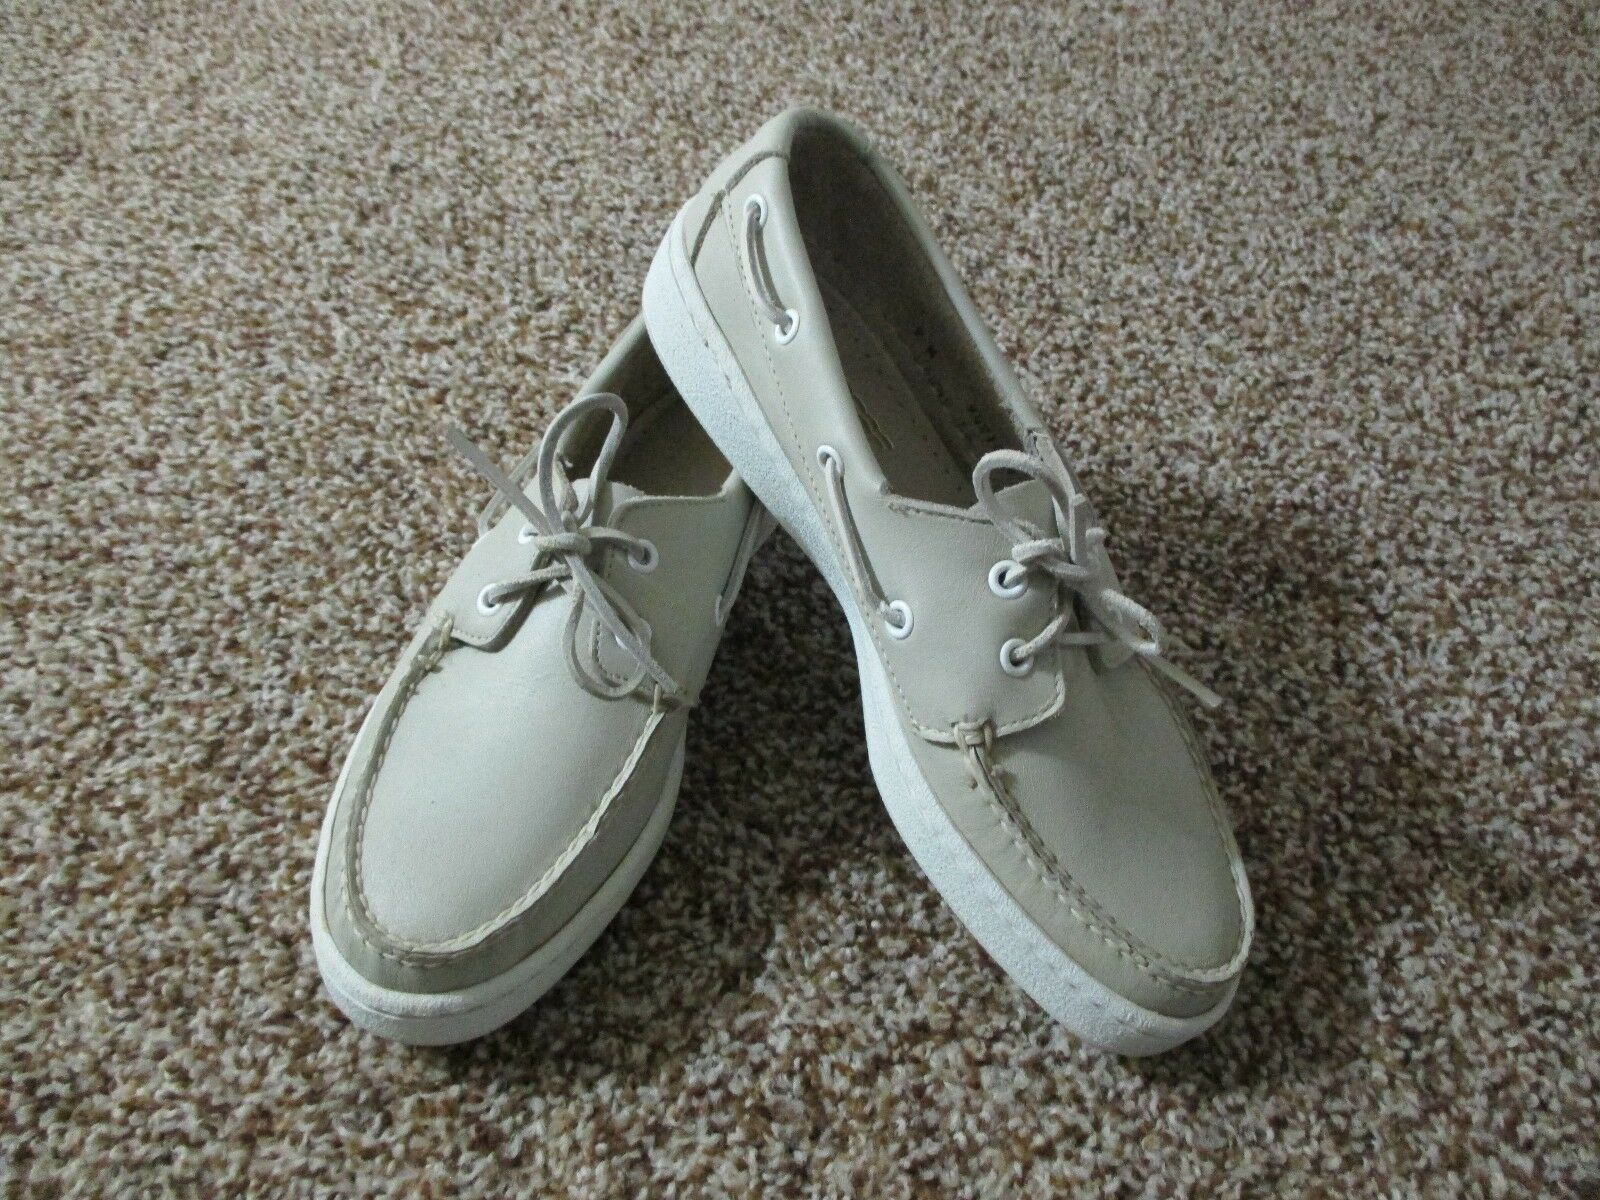 WOMENS SPERRY TOP SIDER CLASSIC LEATHER 2 EYE BOAT SHOE SZ 9 LIGHT BEIGE LEATHER